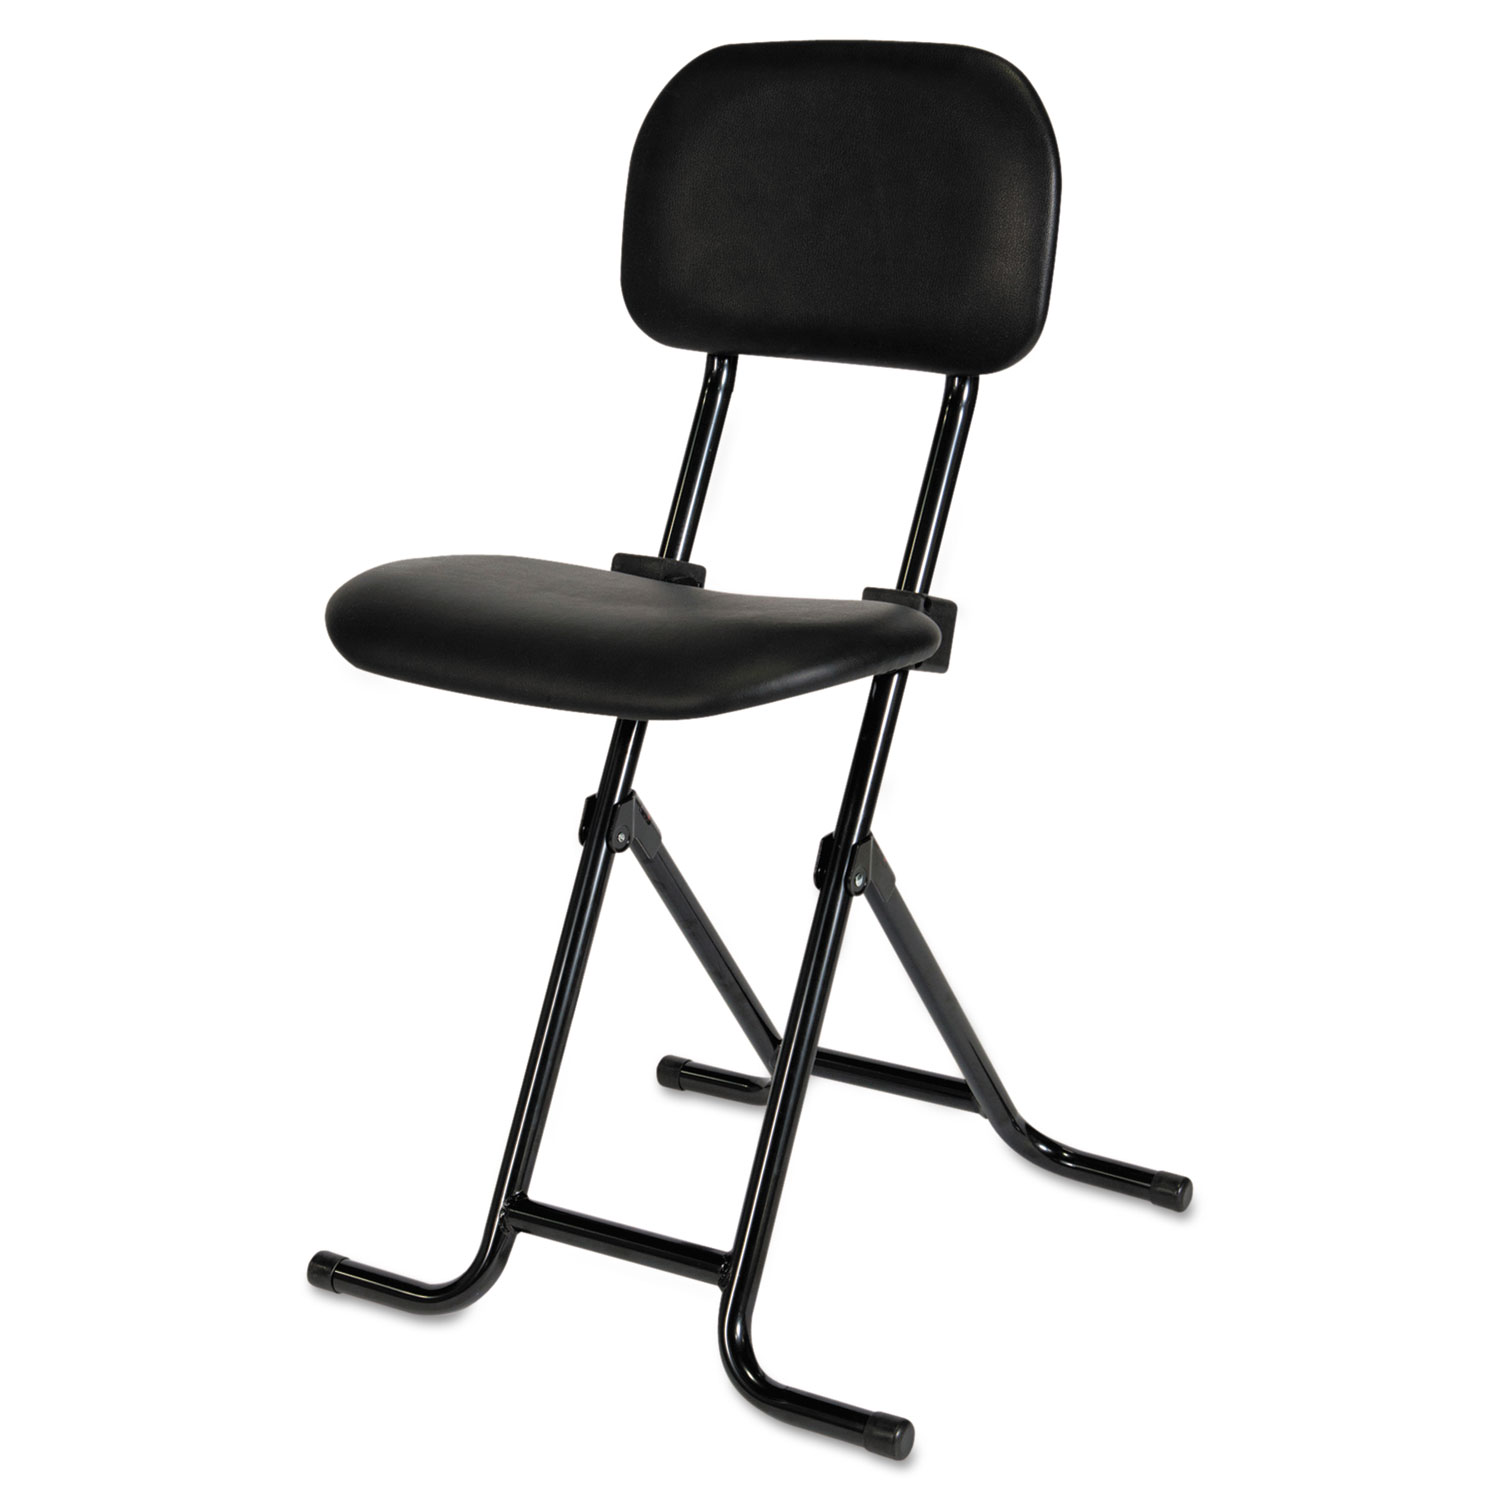 Fine Alera Il Series Height Adjustable Folding Stool 27 5 Seat Height Supports Up To 300 Lbs Black Seat Back Black Base Cjindustries Chair Design For Home Cjindustriesco